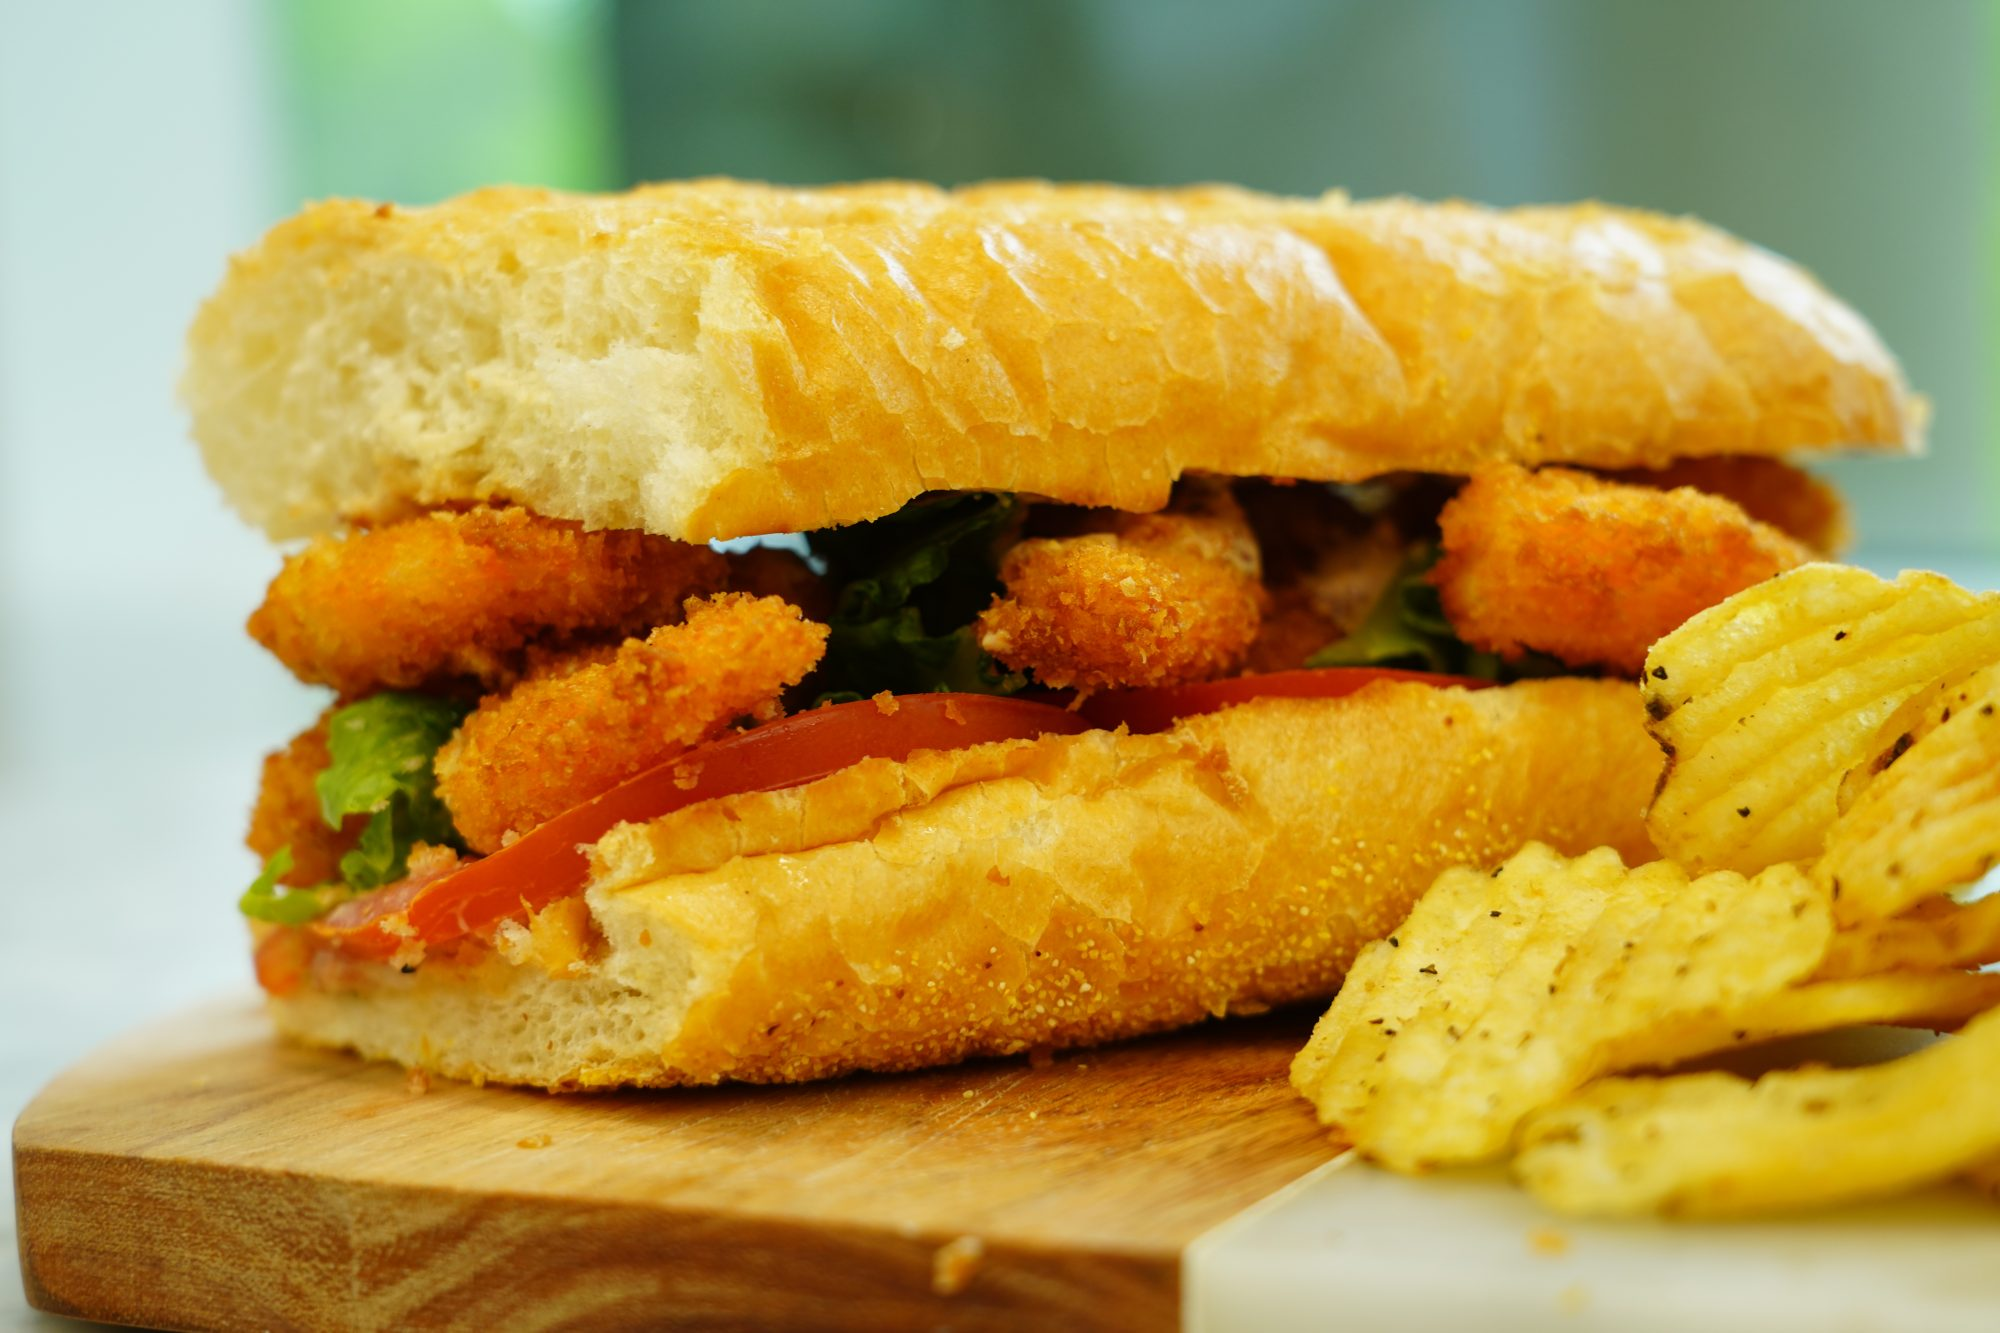 side view of a shrimp po' boy sandwich with fried shrimp, tomatoes, and lettuce on a french roll